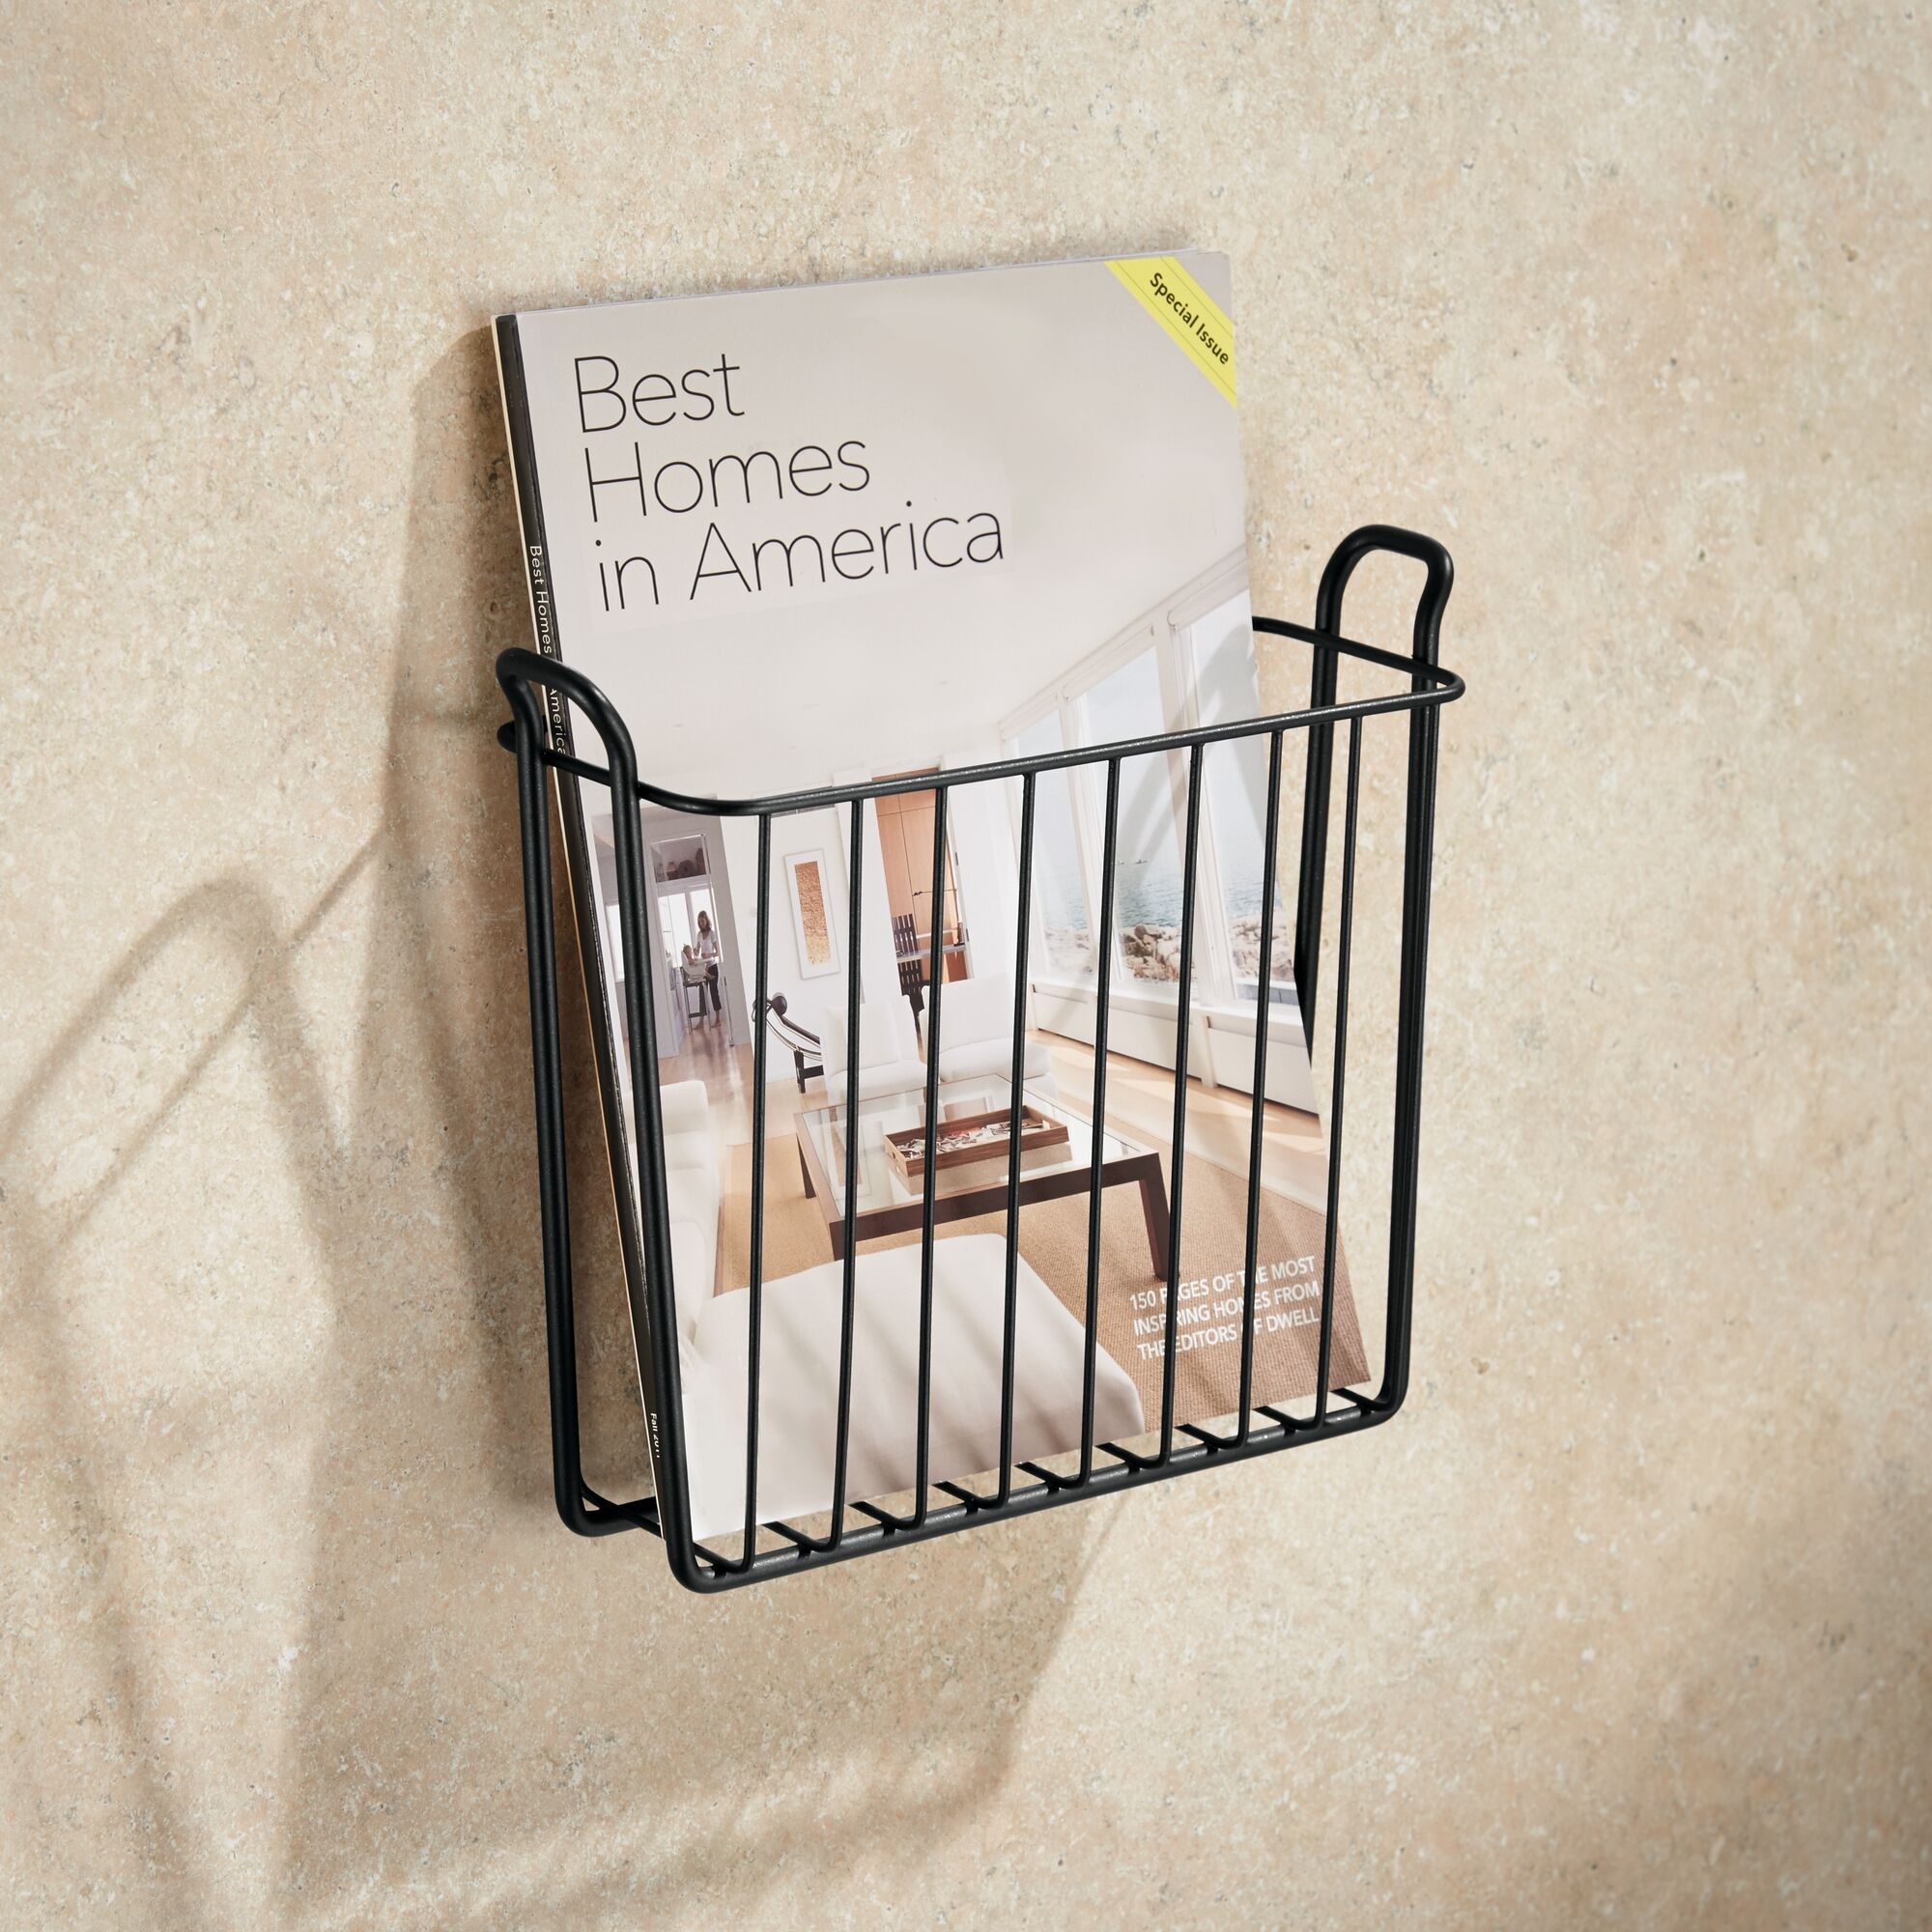 mDesign-Metal-Wall-Mount-Magazine-Book-Holder-Compact-Rack thumbnail 27